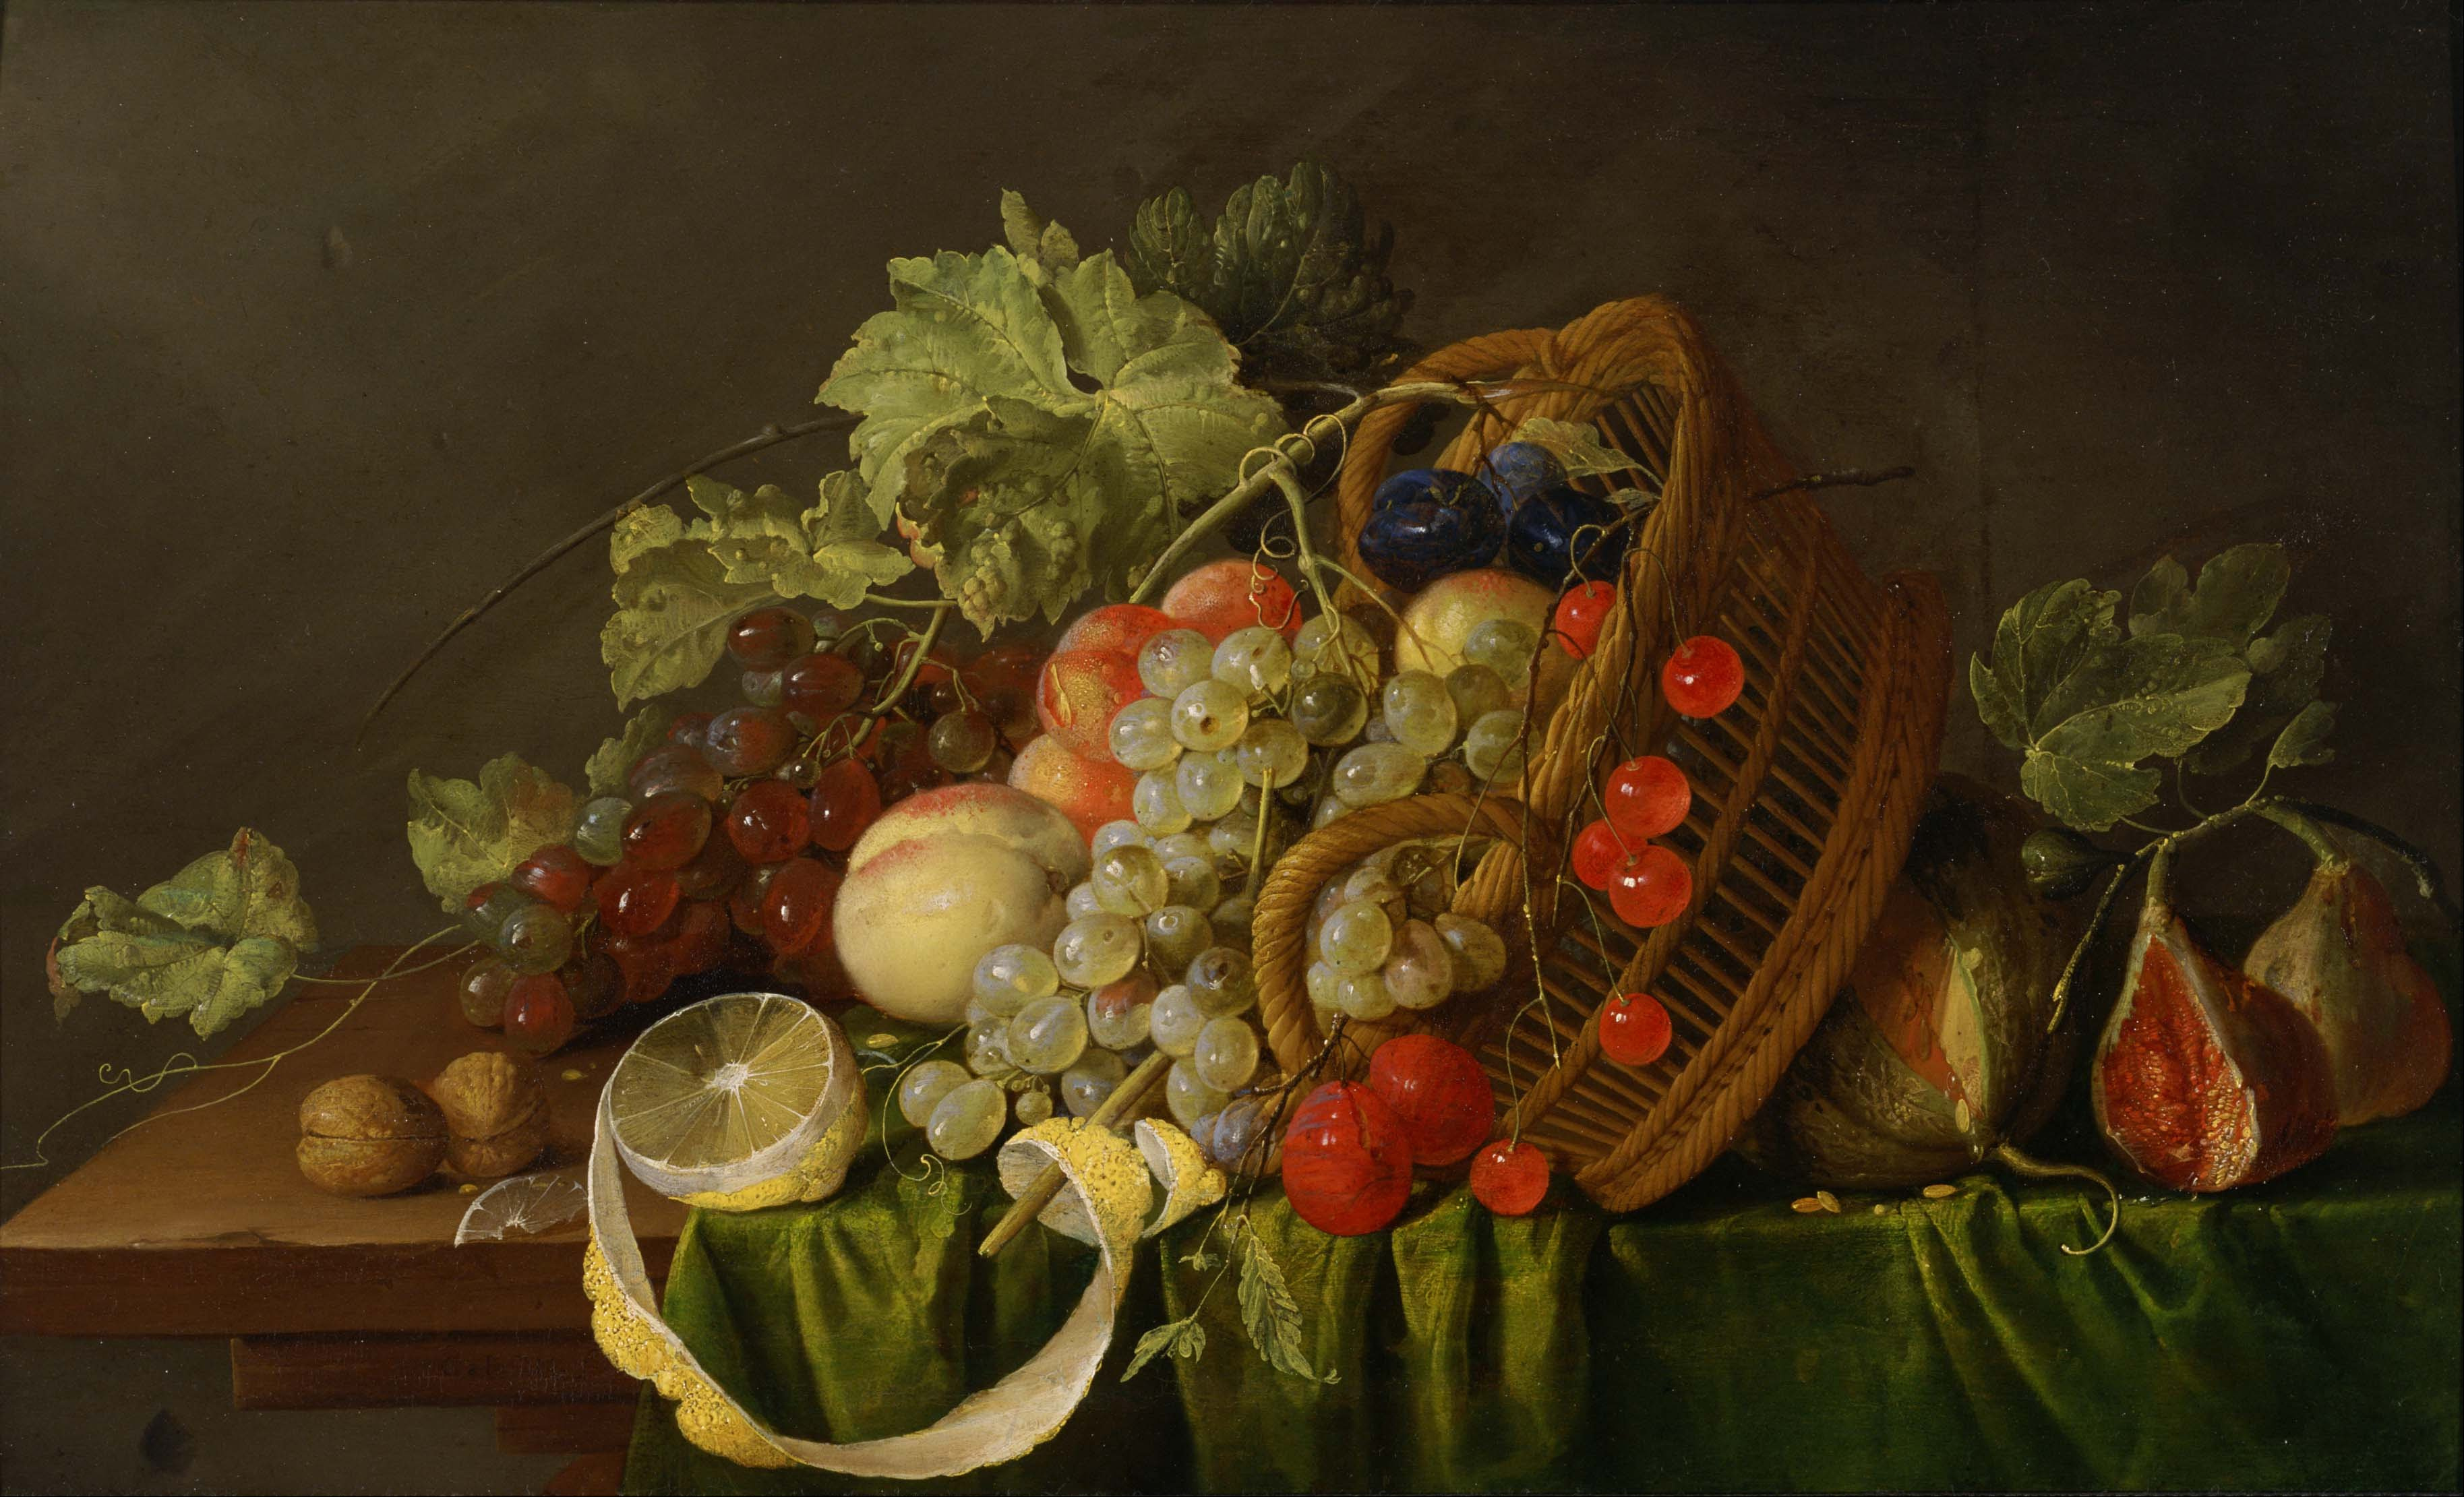 """An example of a historical  art piece depicting a """"fruit basket"""" (work is in the public domain)."""